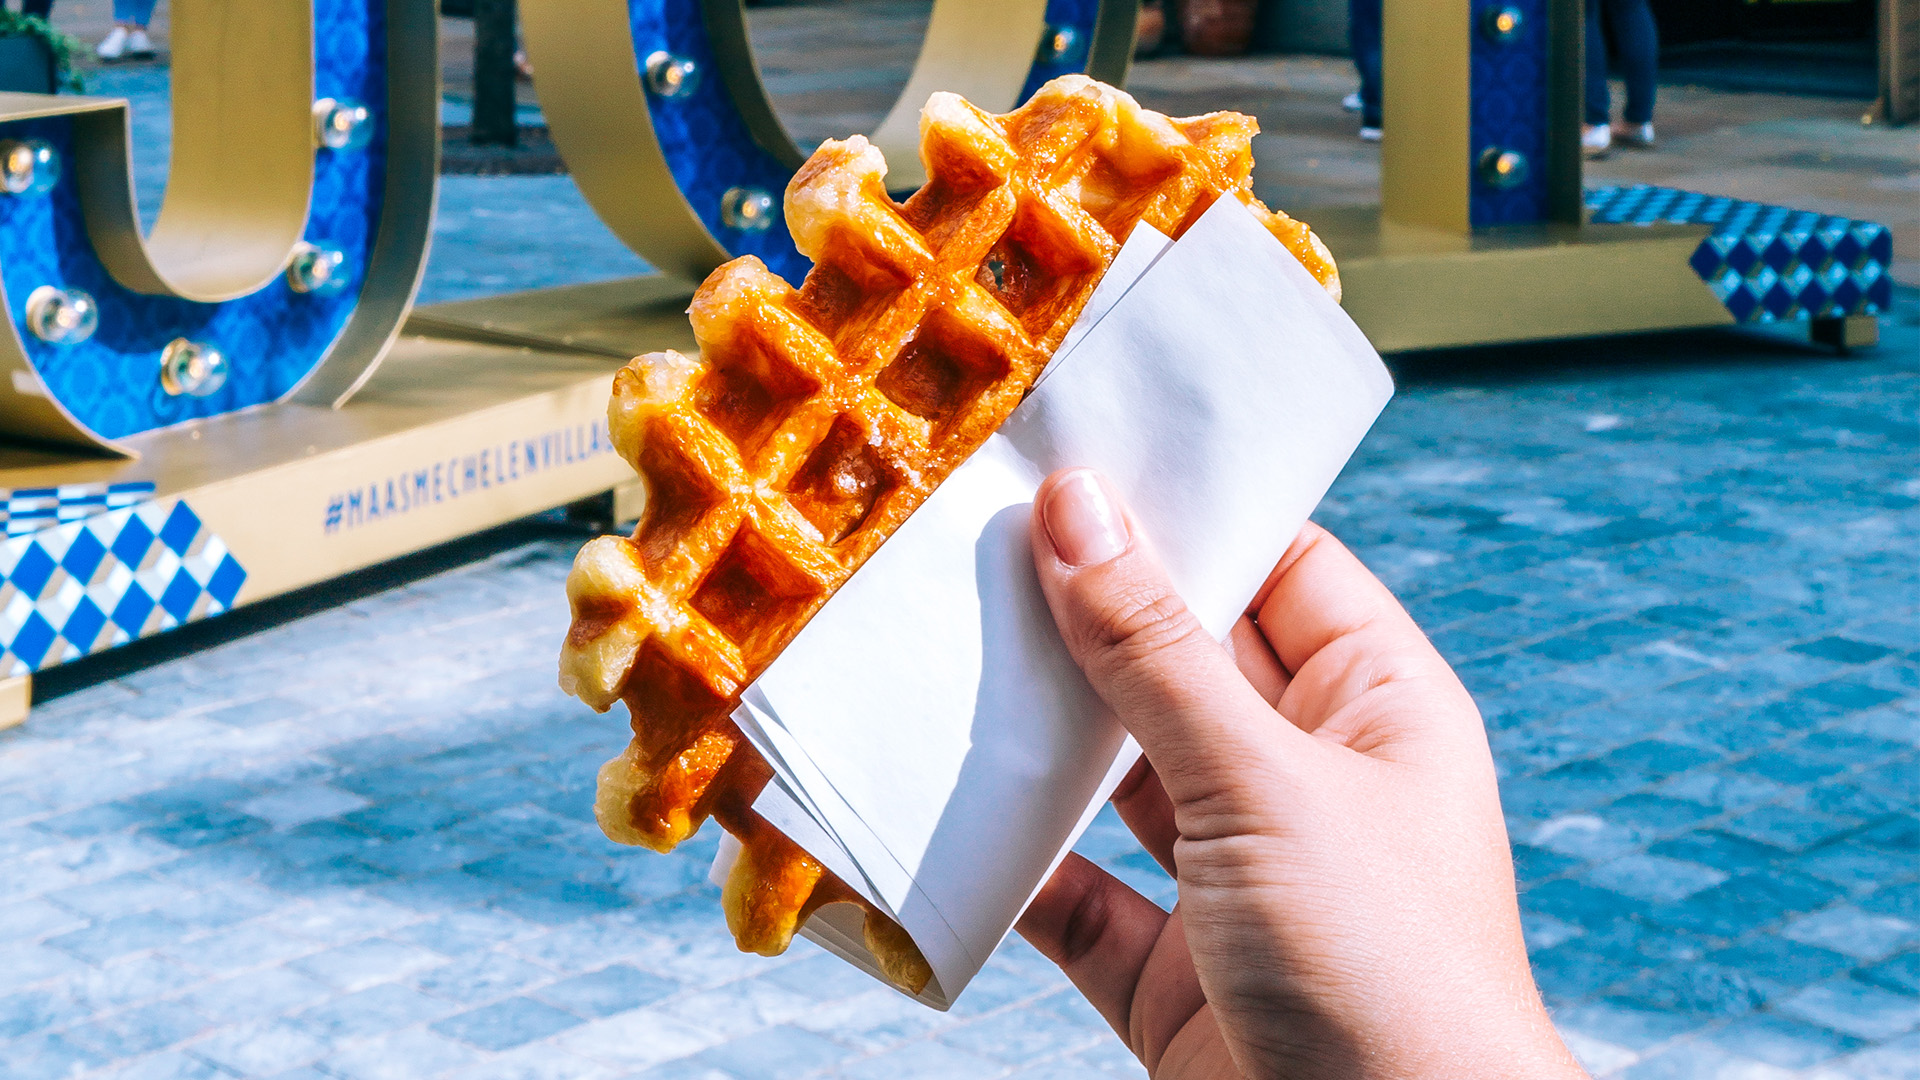 Waffles at Maasmechelen Village